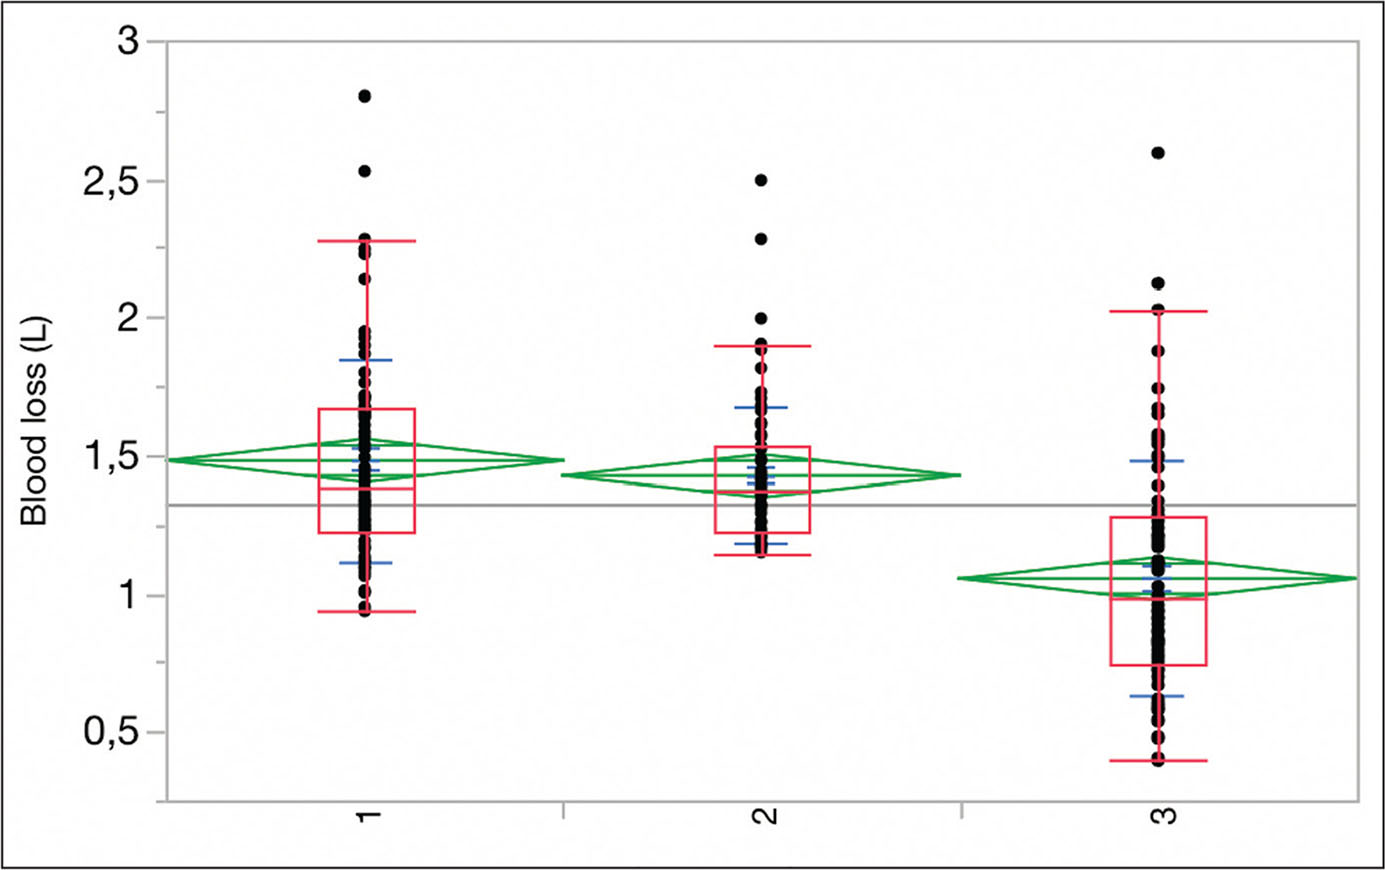 Comparison of blood loss among the control group not receiving epsilon-aminocaproic acid (ε-ACA) (1), the ε-ACA-after-tourniquet-release group (2), and the ε-ACA-before-tourniquet-release group (3). Descriptive statistics include the quantile plot, standard deviation, and standard error in each column.